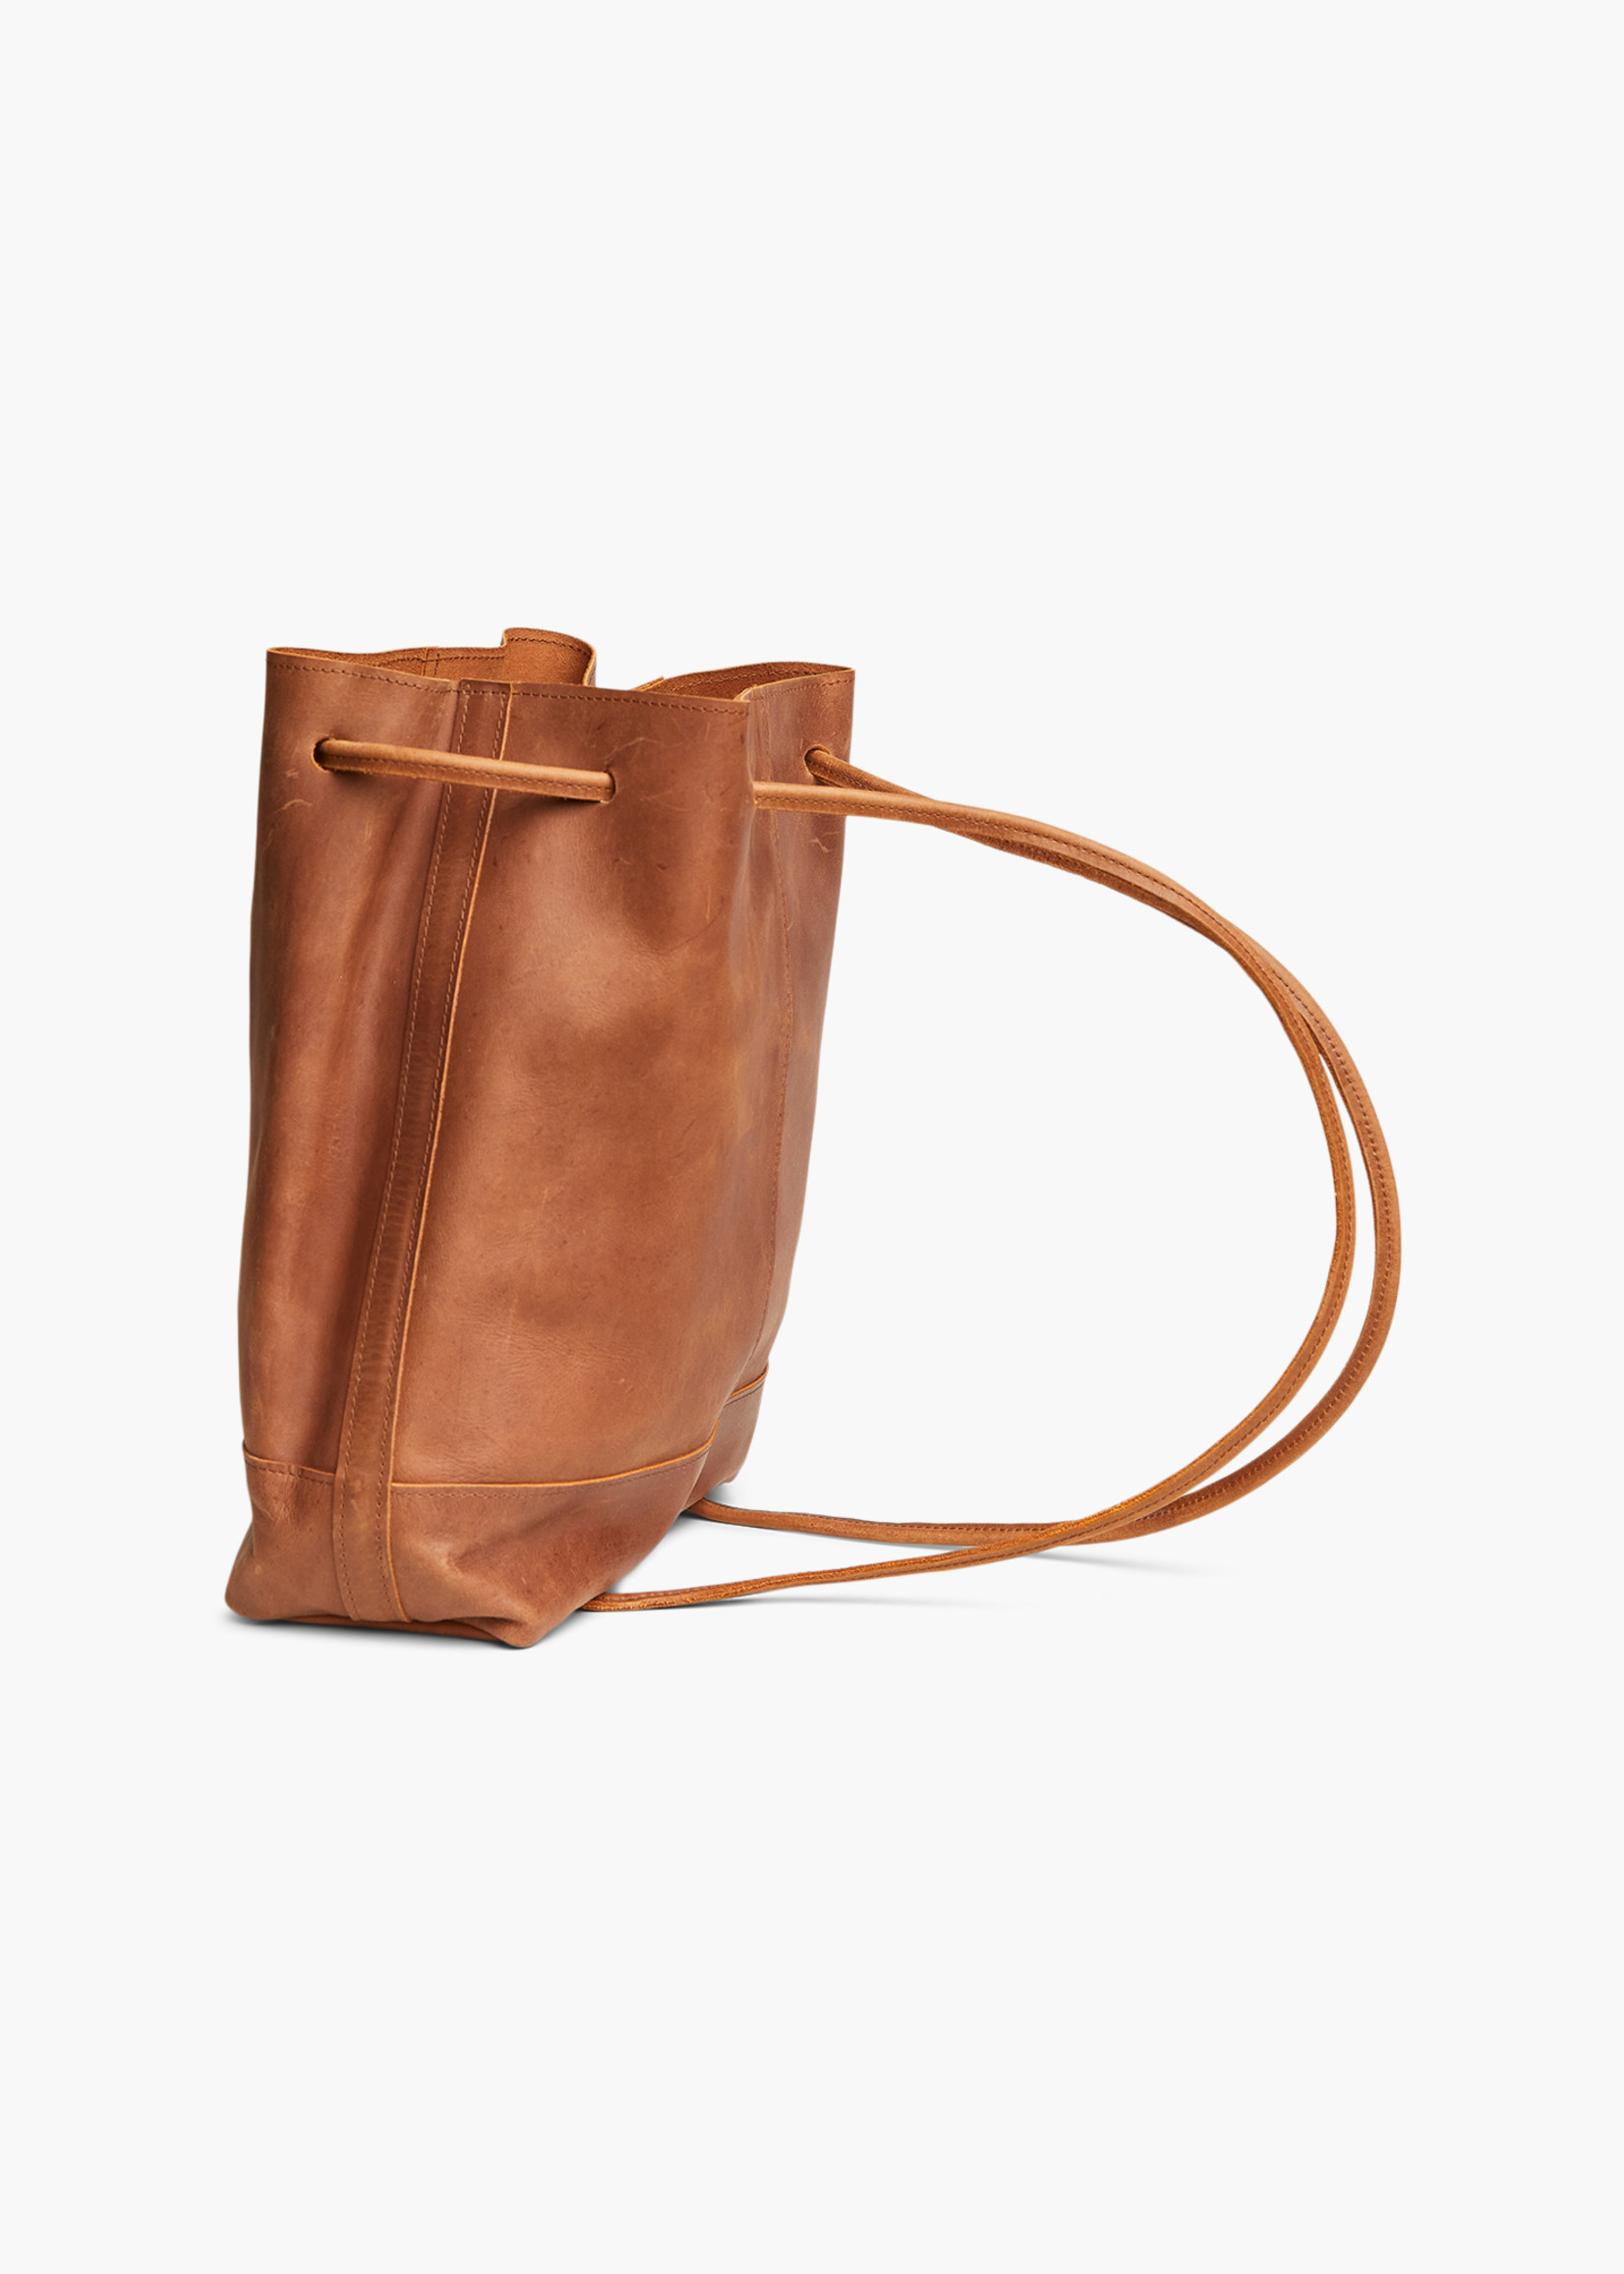 Elitaire Boutique April Backpack in Whiskey